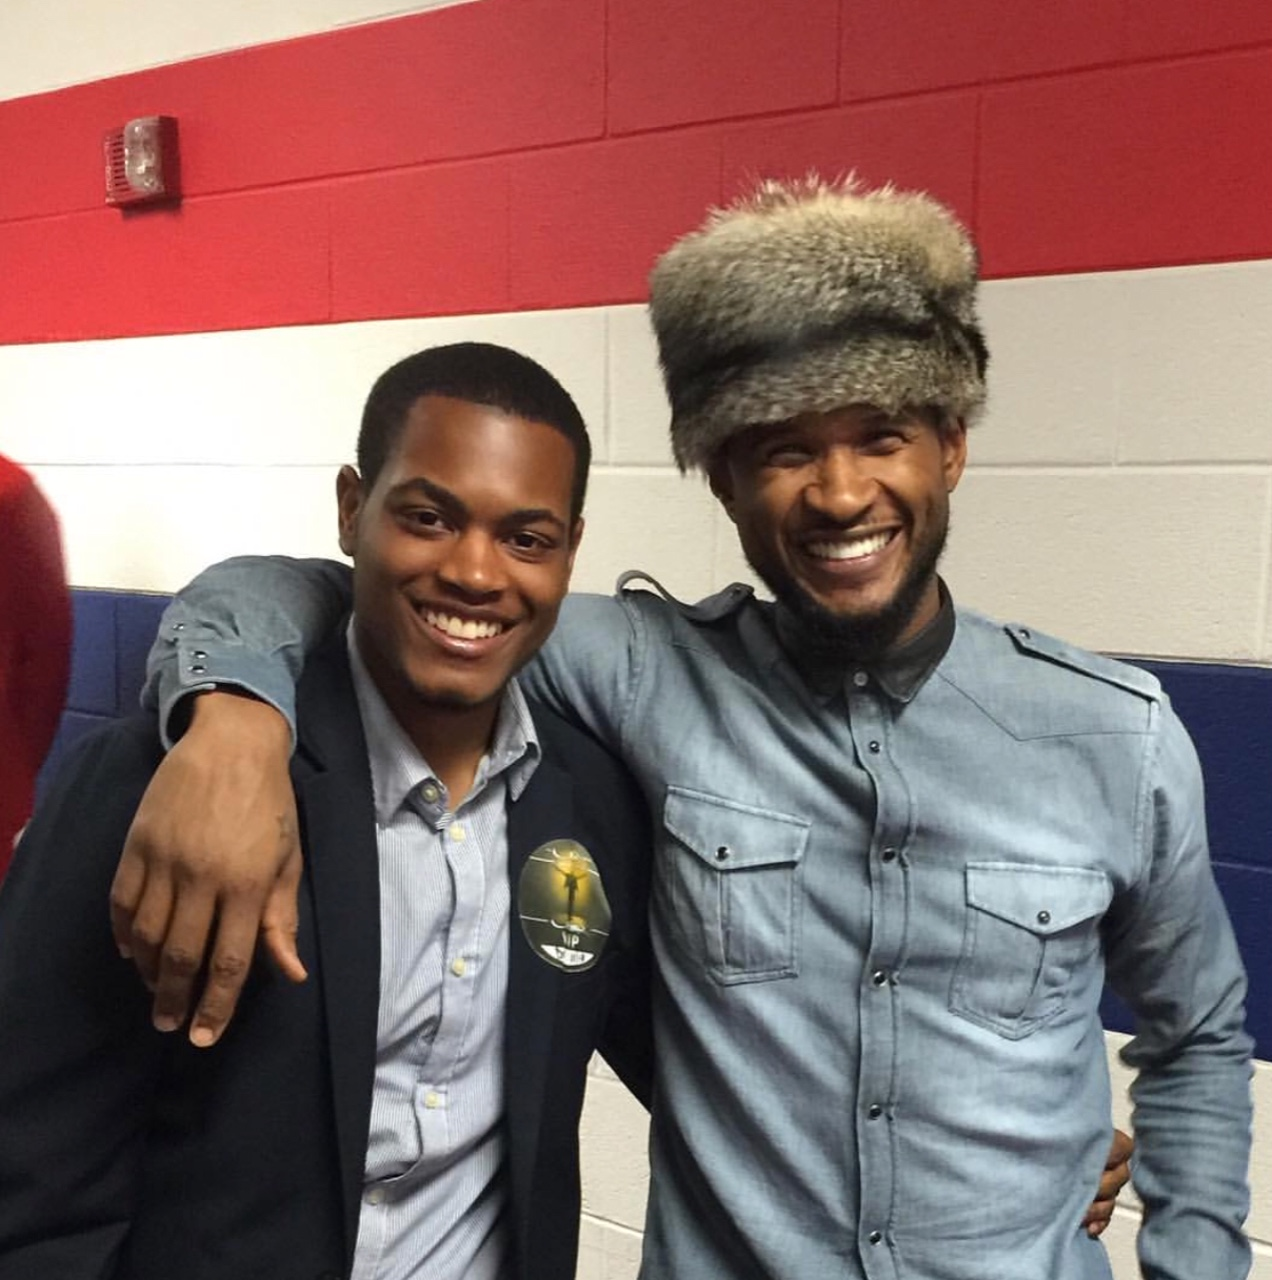 Ammon and Usher Raymond. (Picture provided by Ammon Lyle)